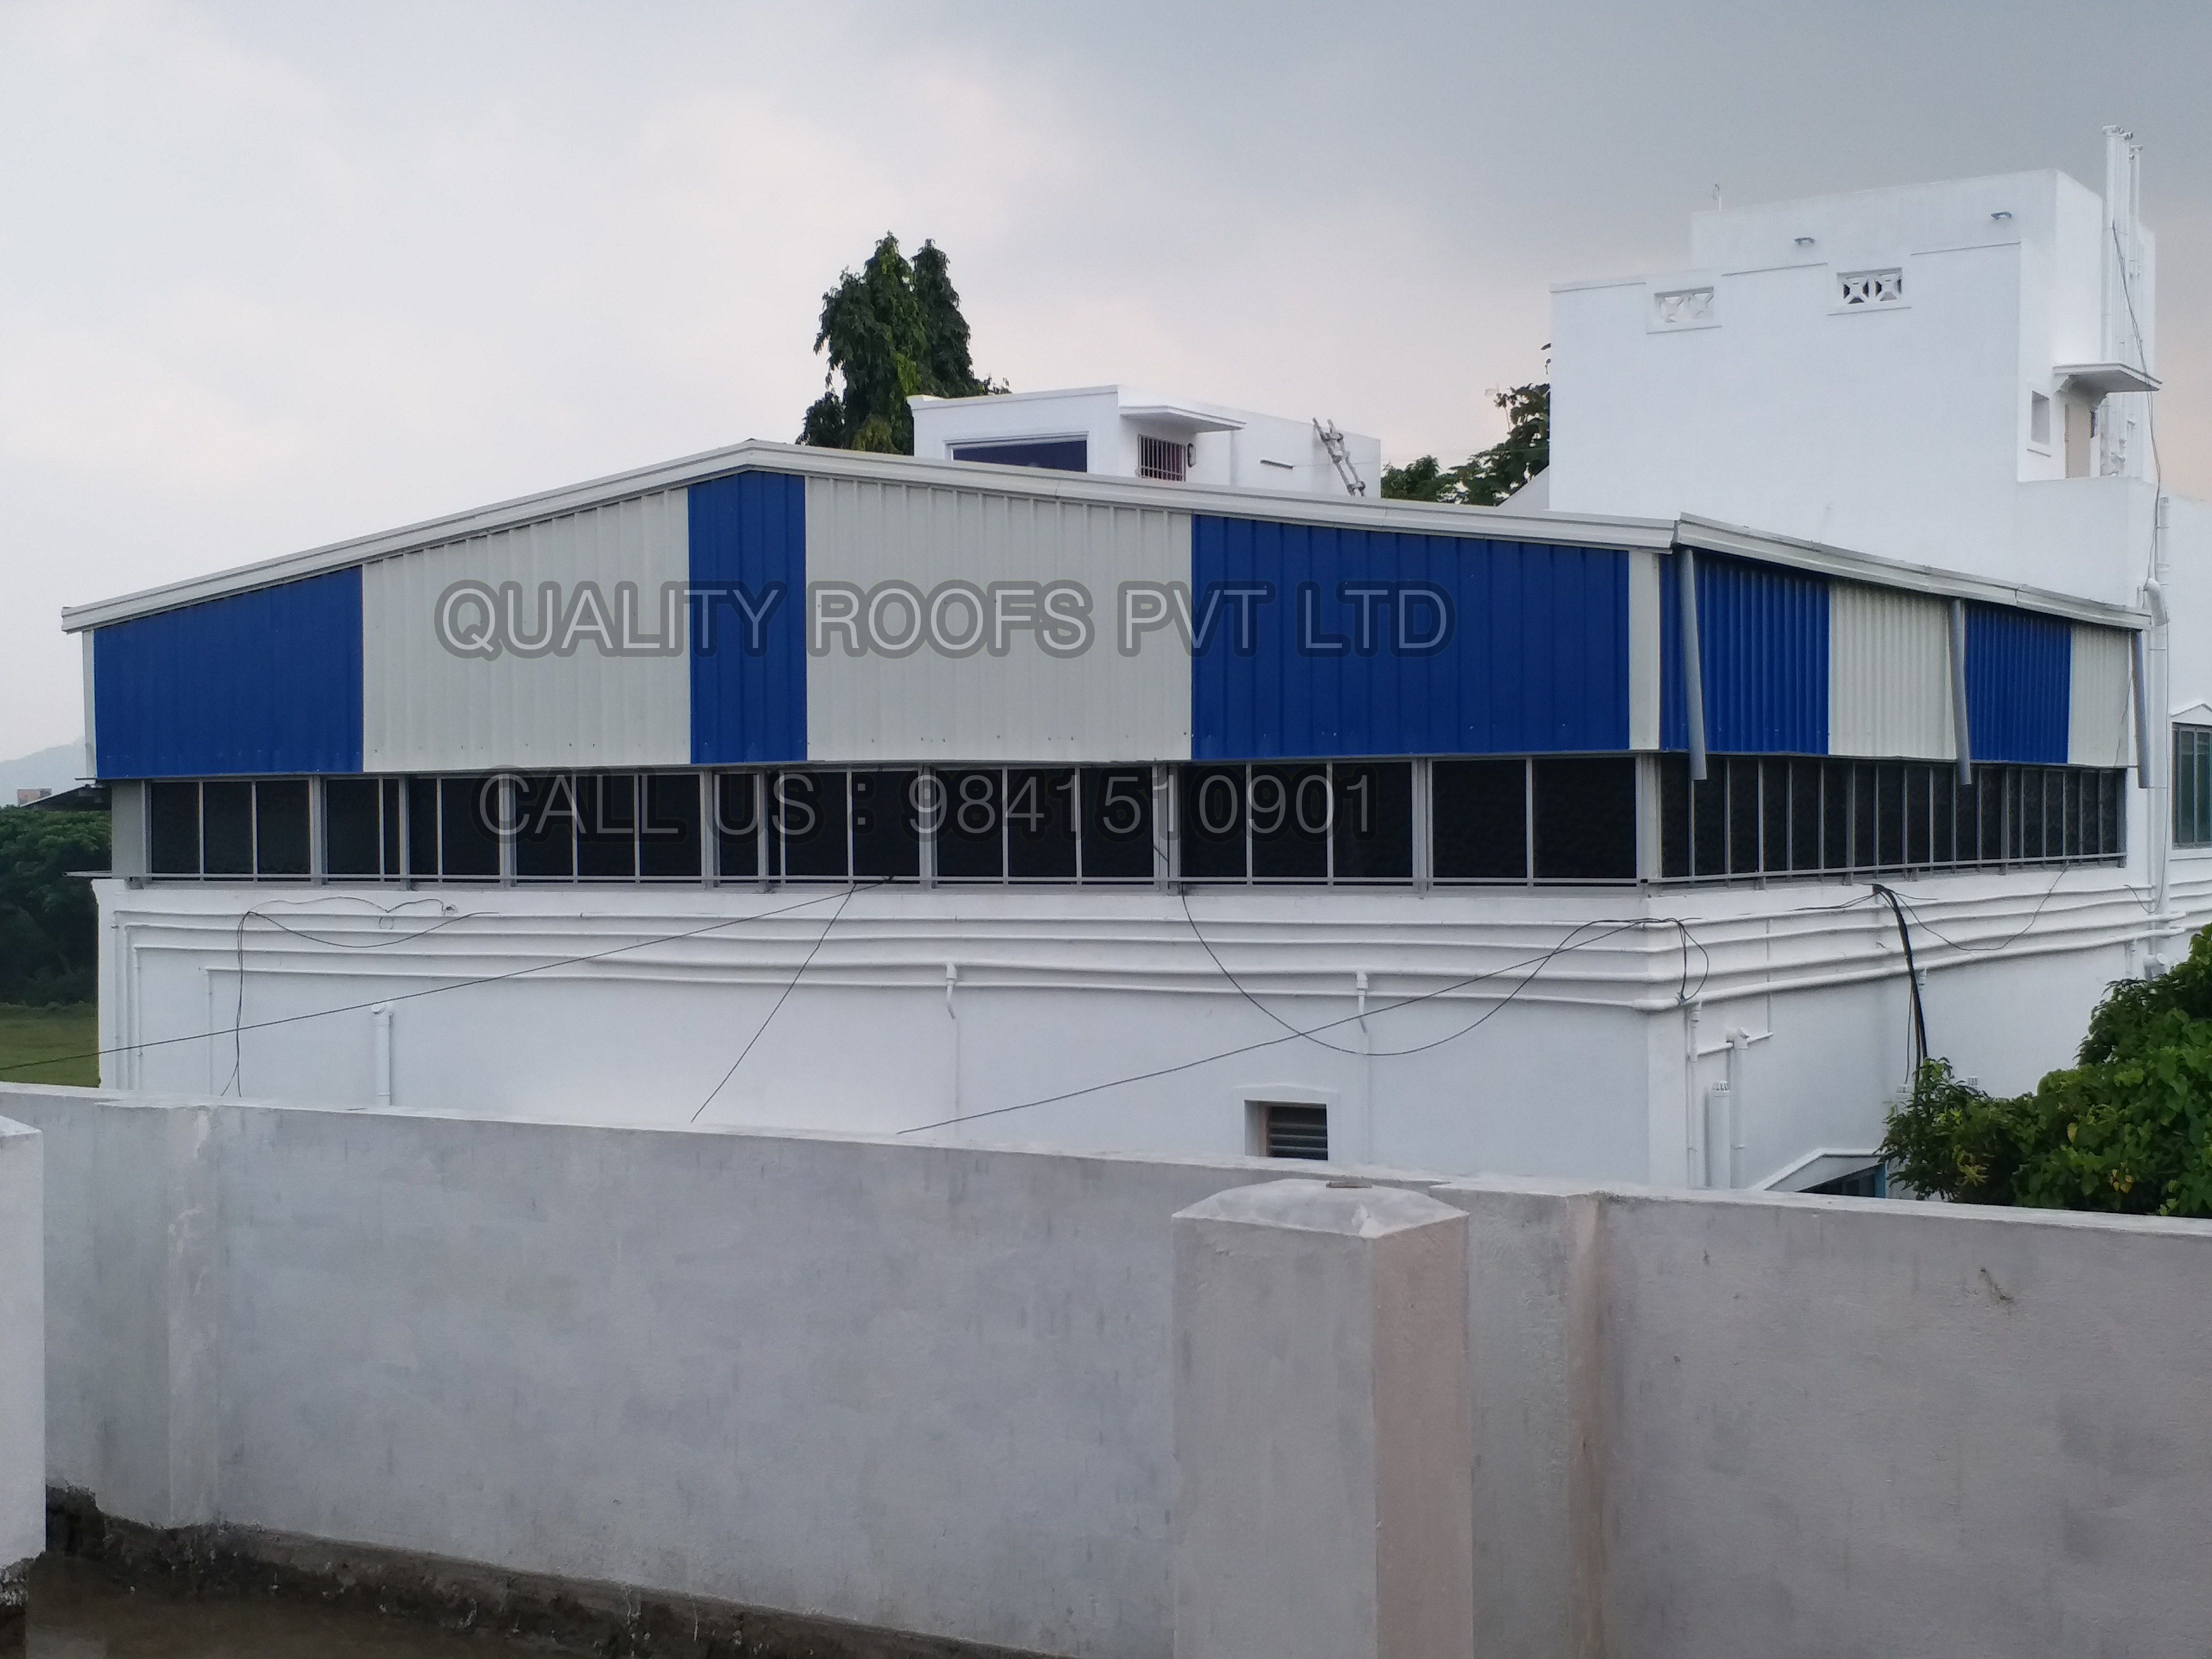 Quality Roofs Pvt Ltd, Terrace Roofing Contractors In Chennai,  Roofing Services In Chennai,  Roofing Material In Chennai, Roofing fabricators, Roofing Chennai